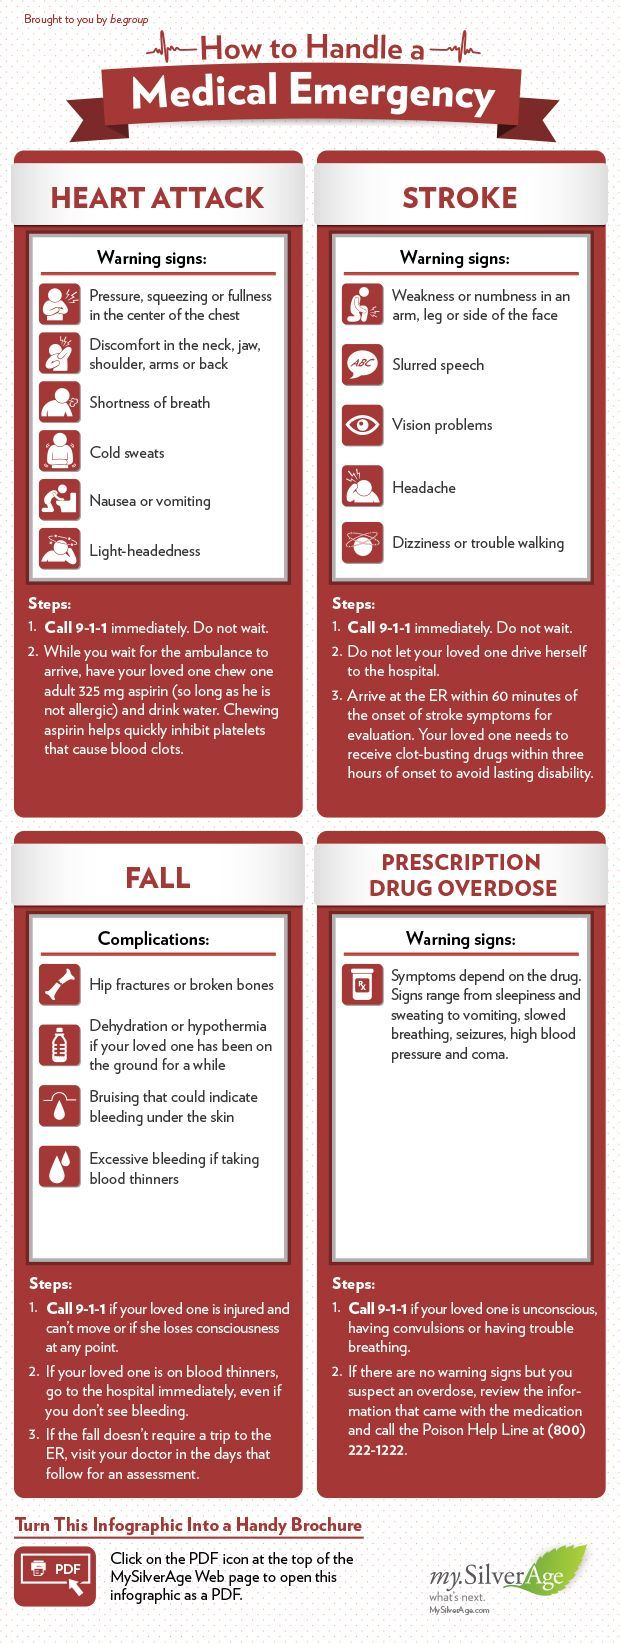 Infographic Showing Steps for Handling Medical Emergencies